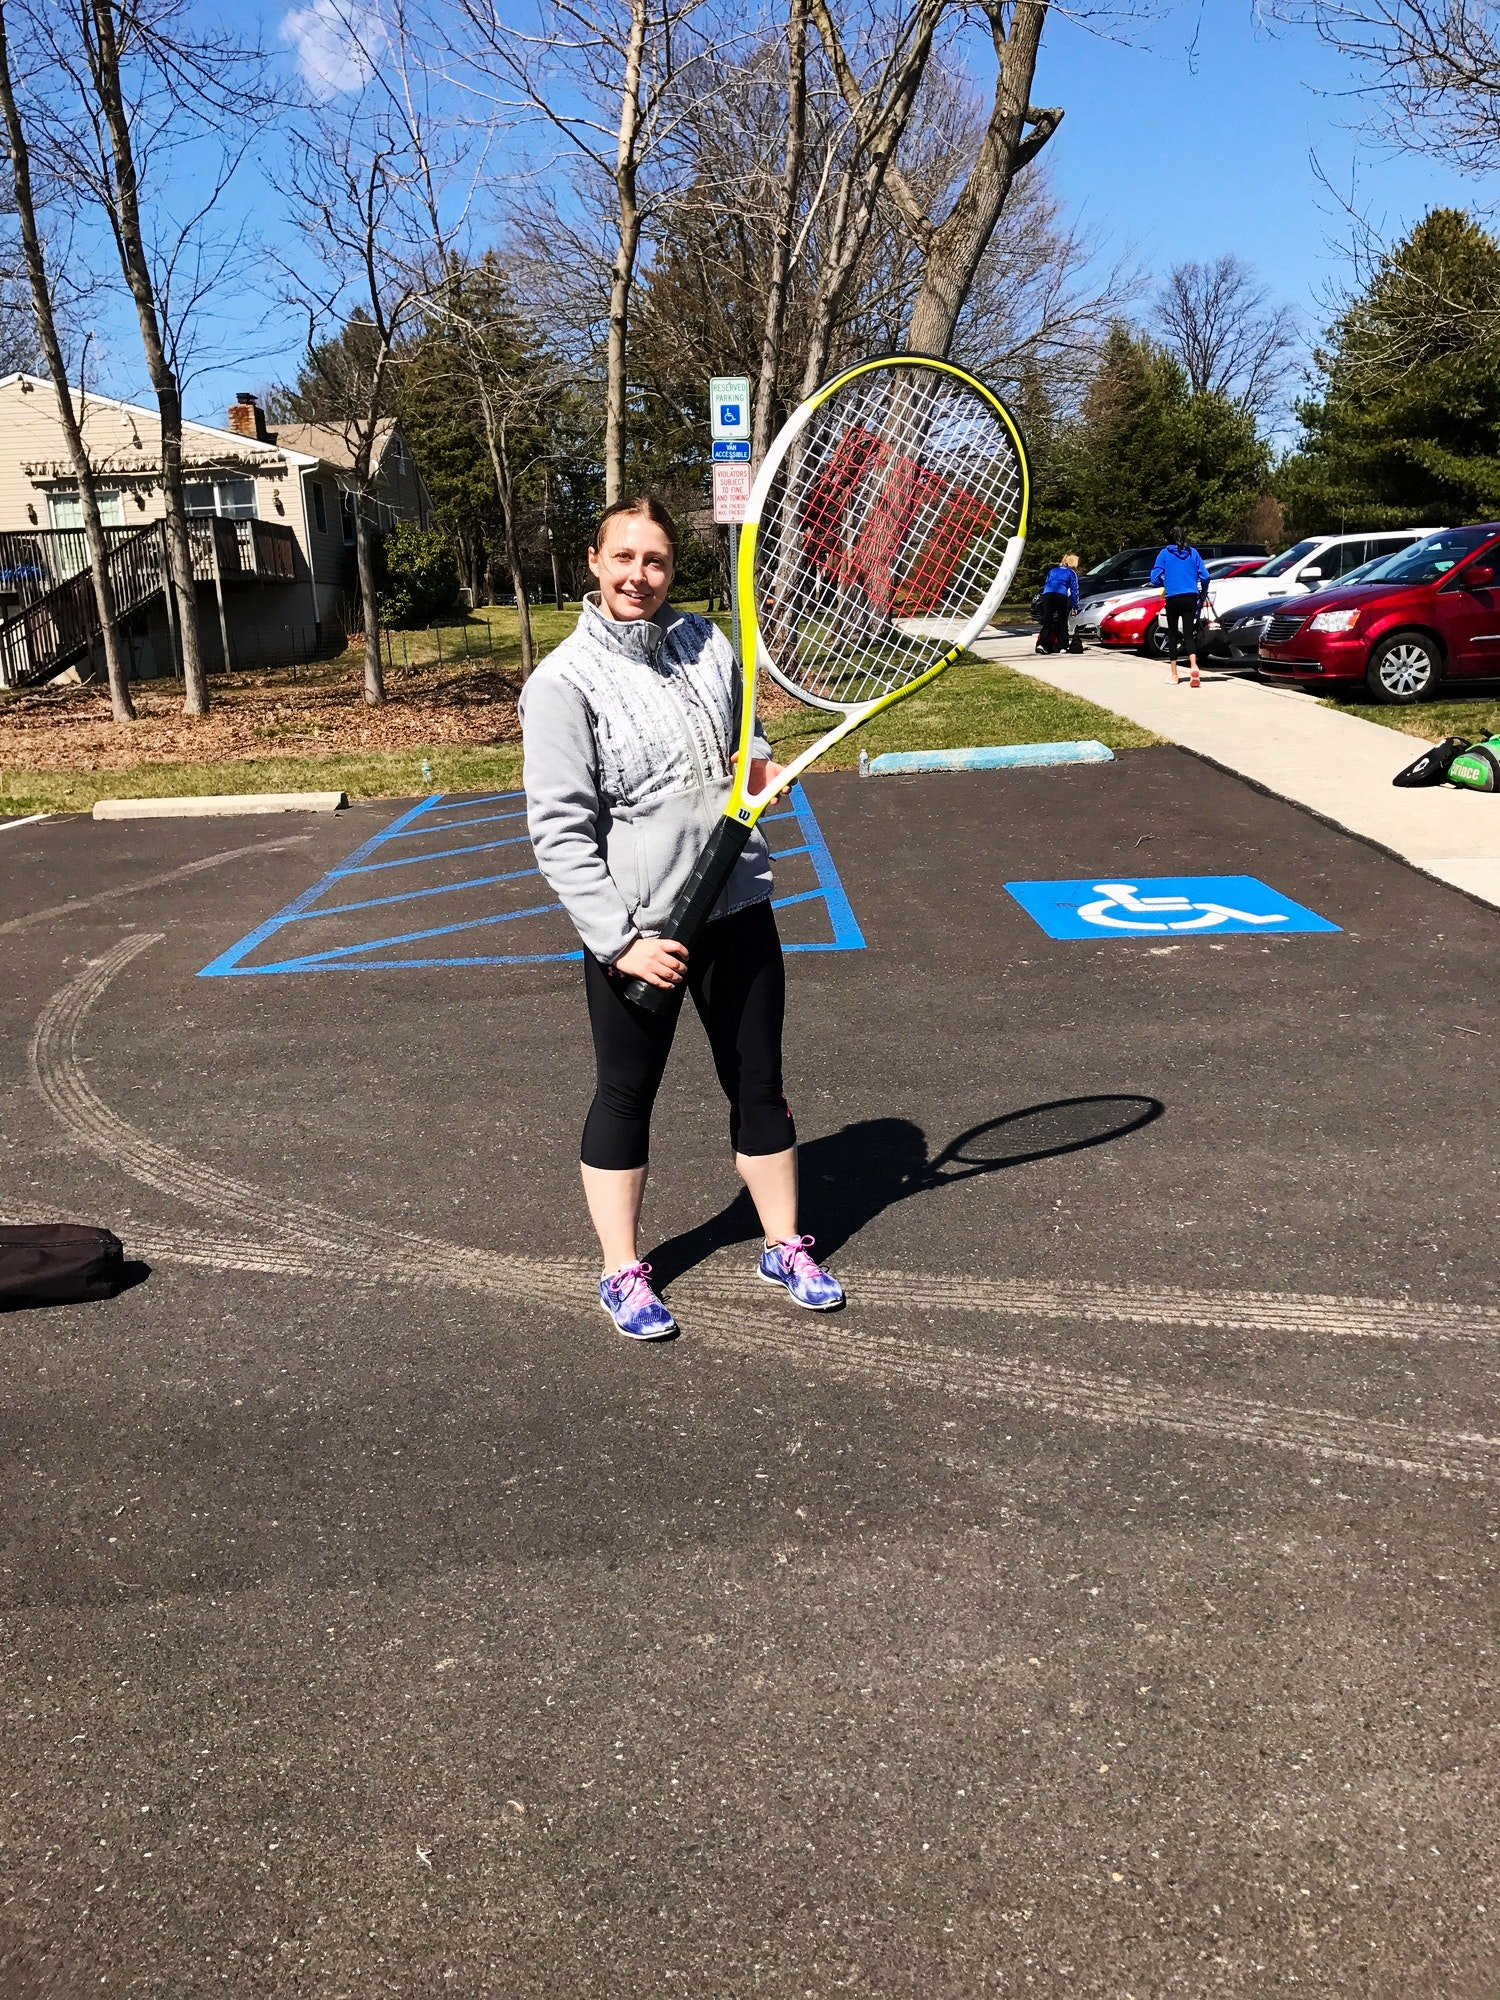 Gabriela D. teaches tennis lessons in Newtown, PA